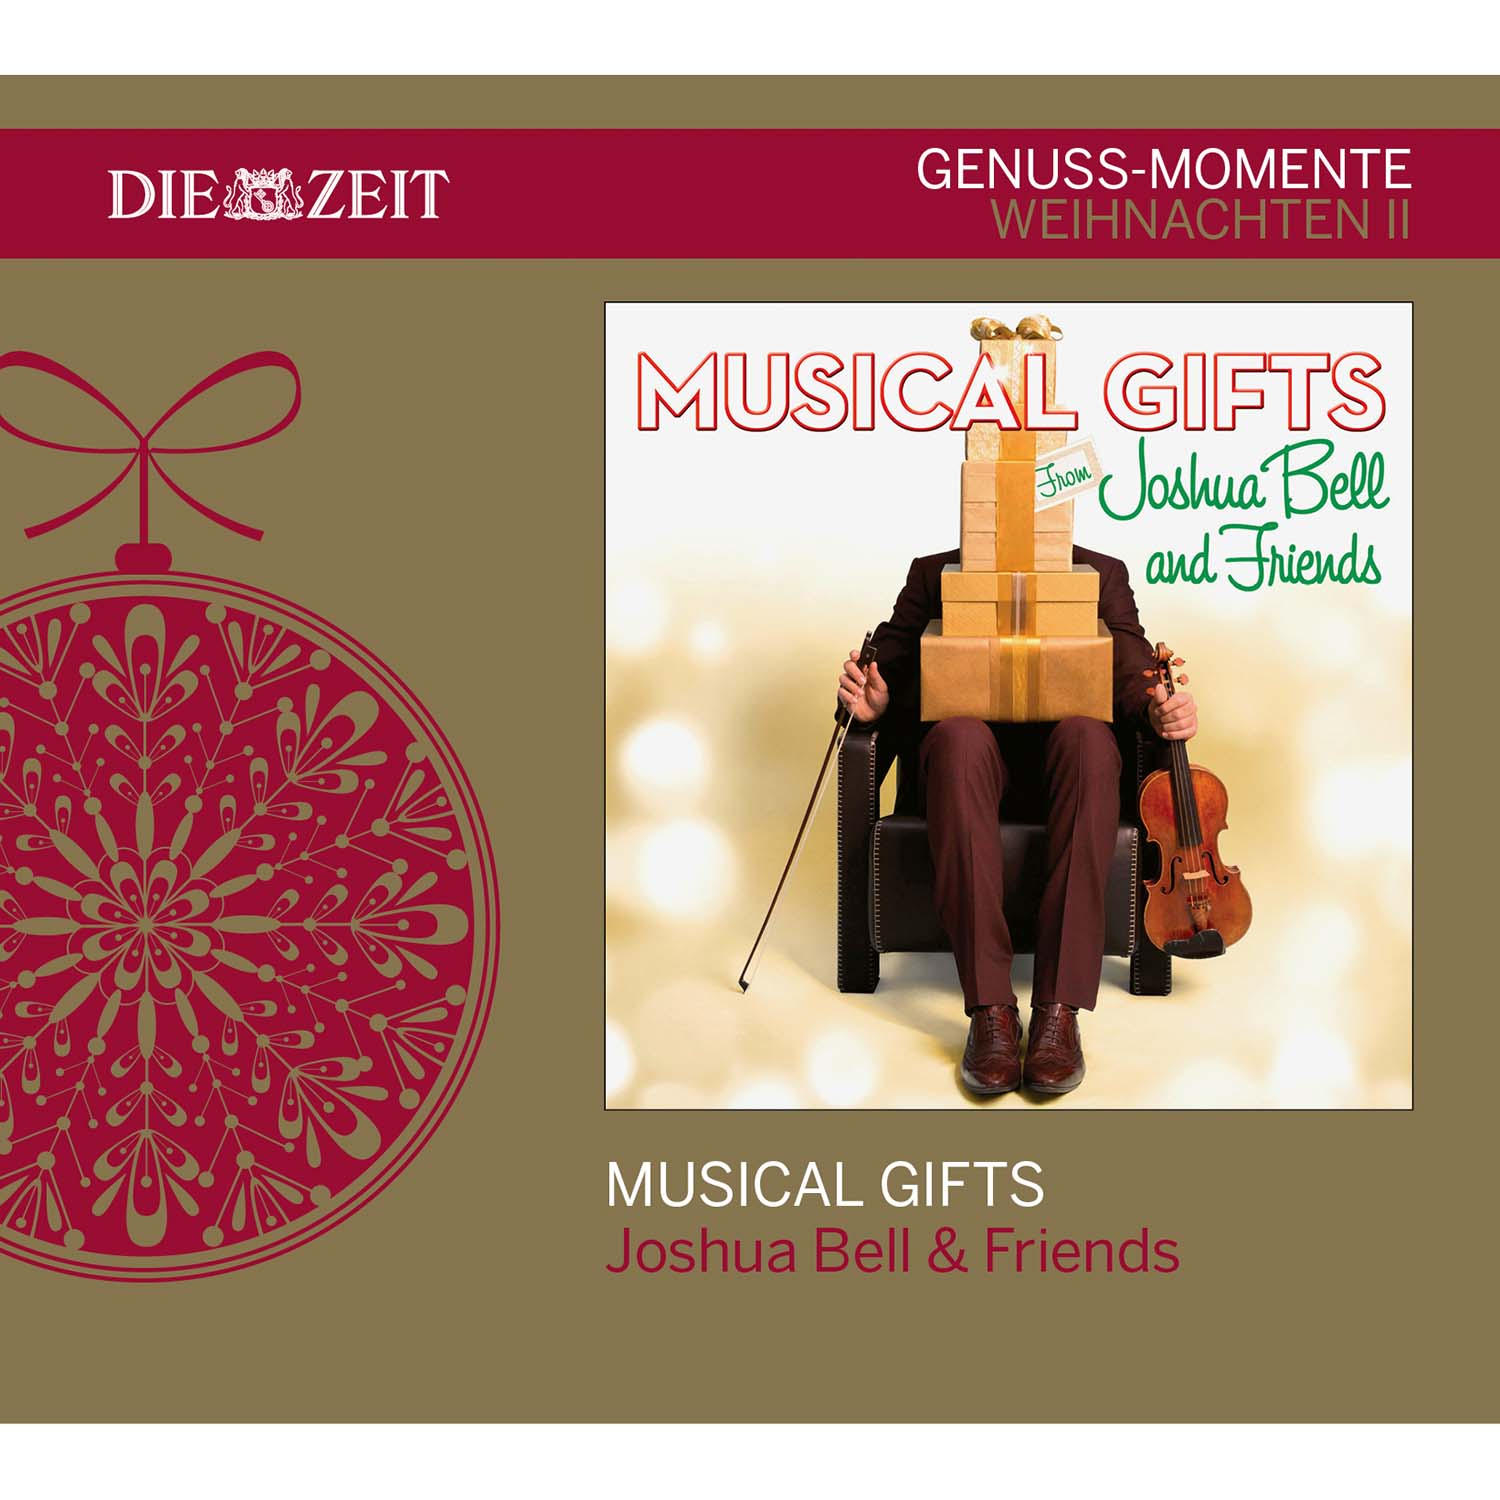 Joshua Bell & Friends: MUSICAL GIFTS